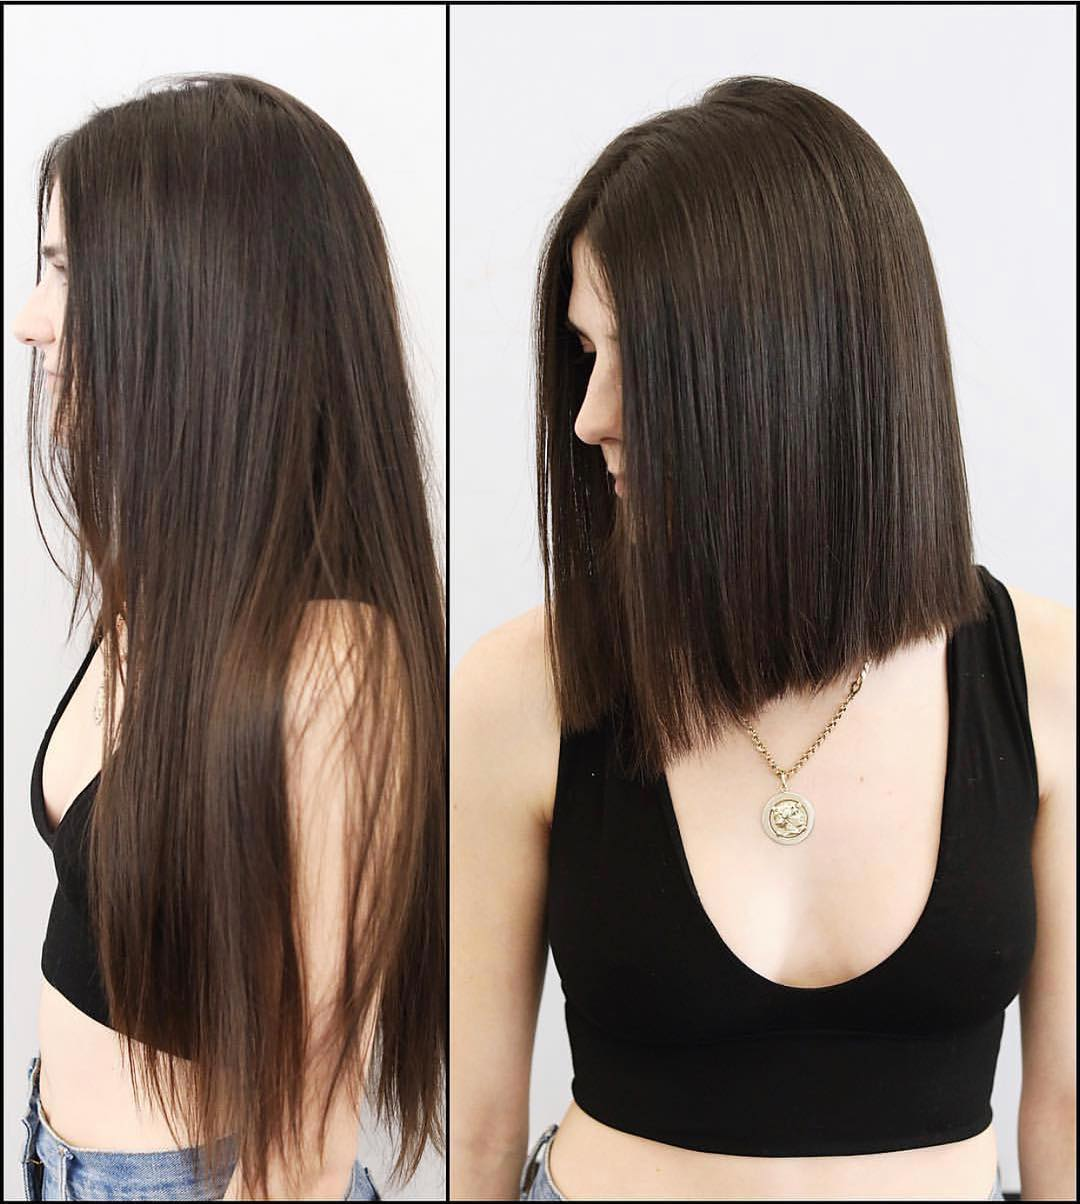 10 Stylish Lob Hairstyle Ideas Best Shoulder Length Hair For